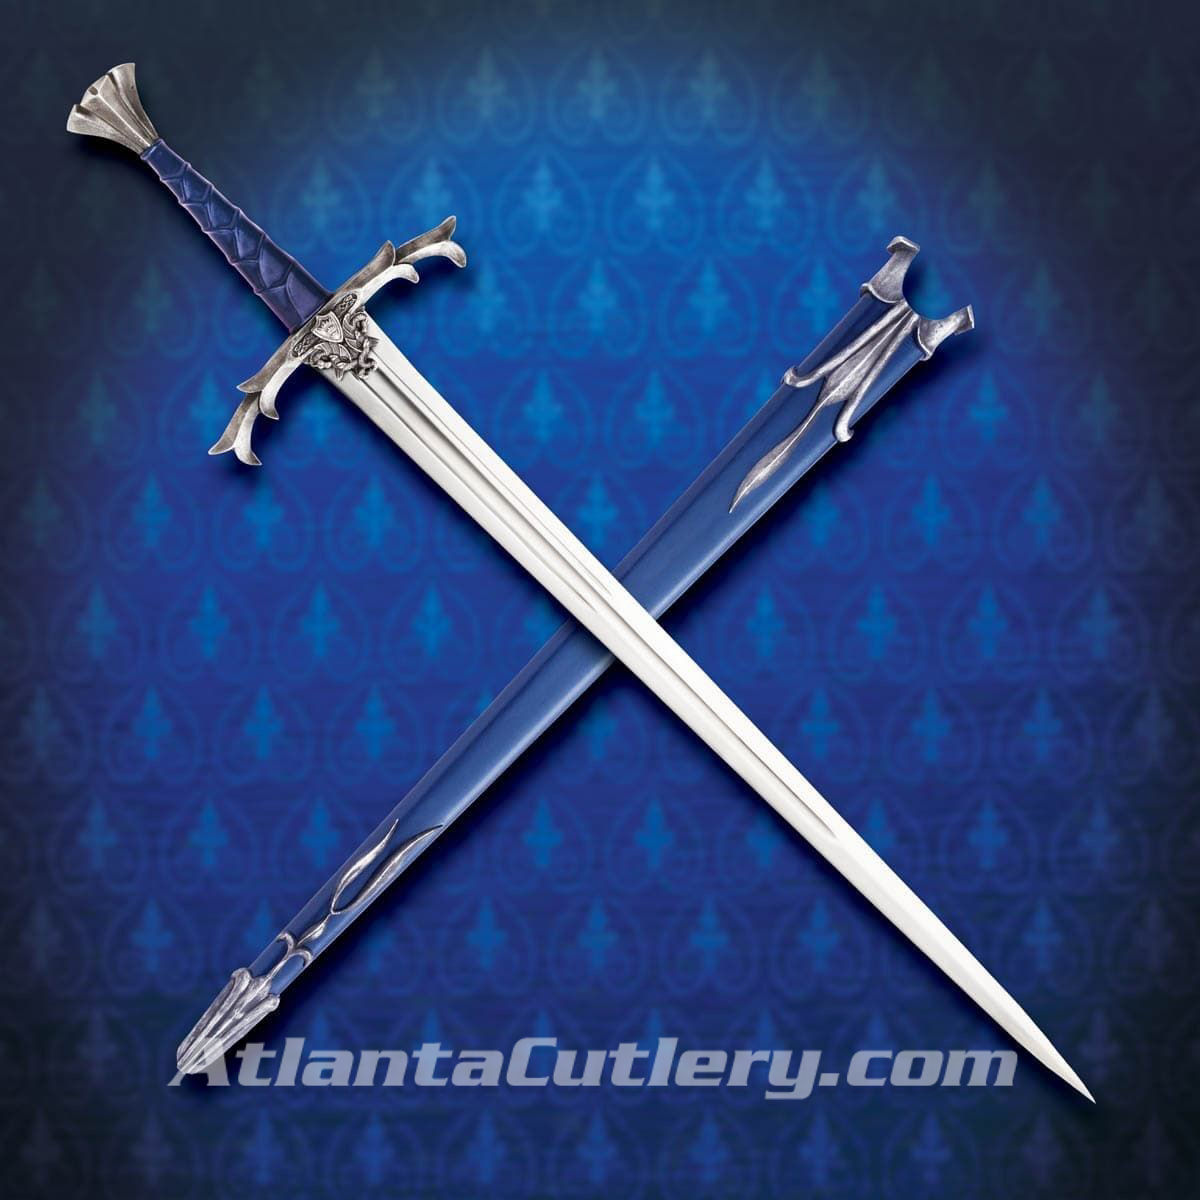 Windlass Excalibur two-handed sword has high-carbon steel blade, antique finish on metal fittings, blue leather grip